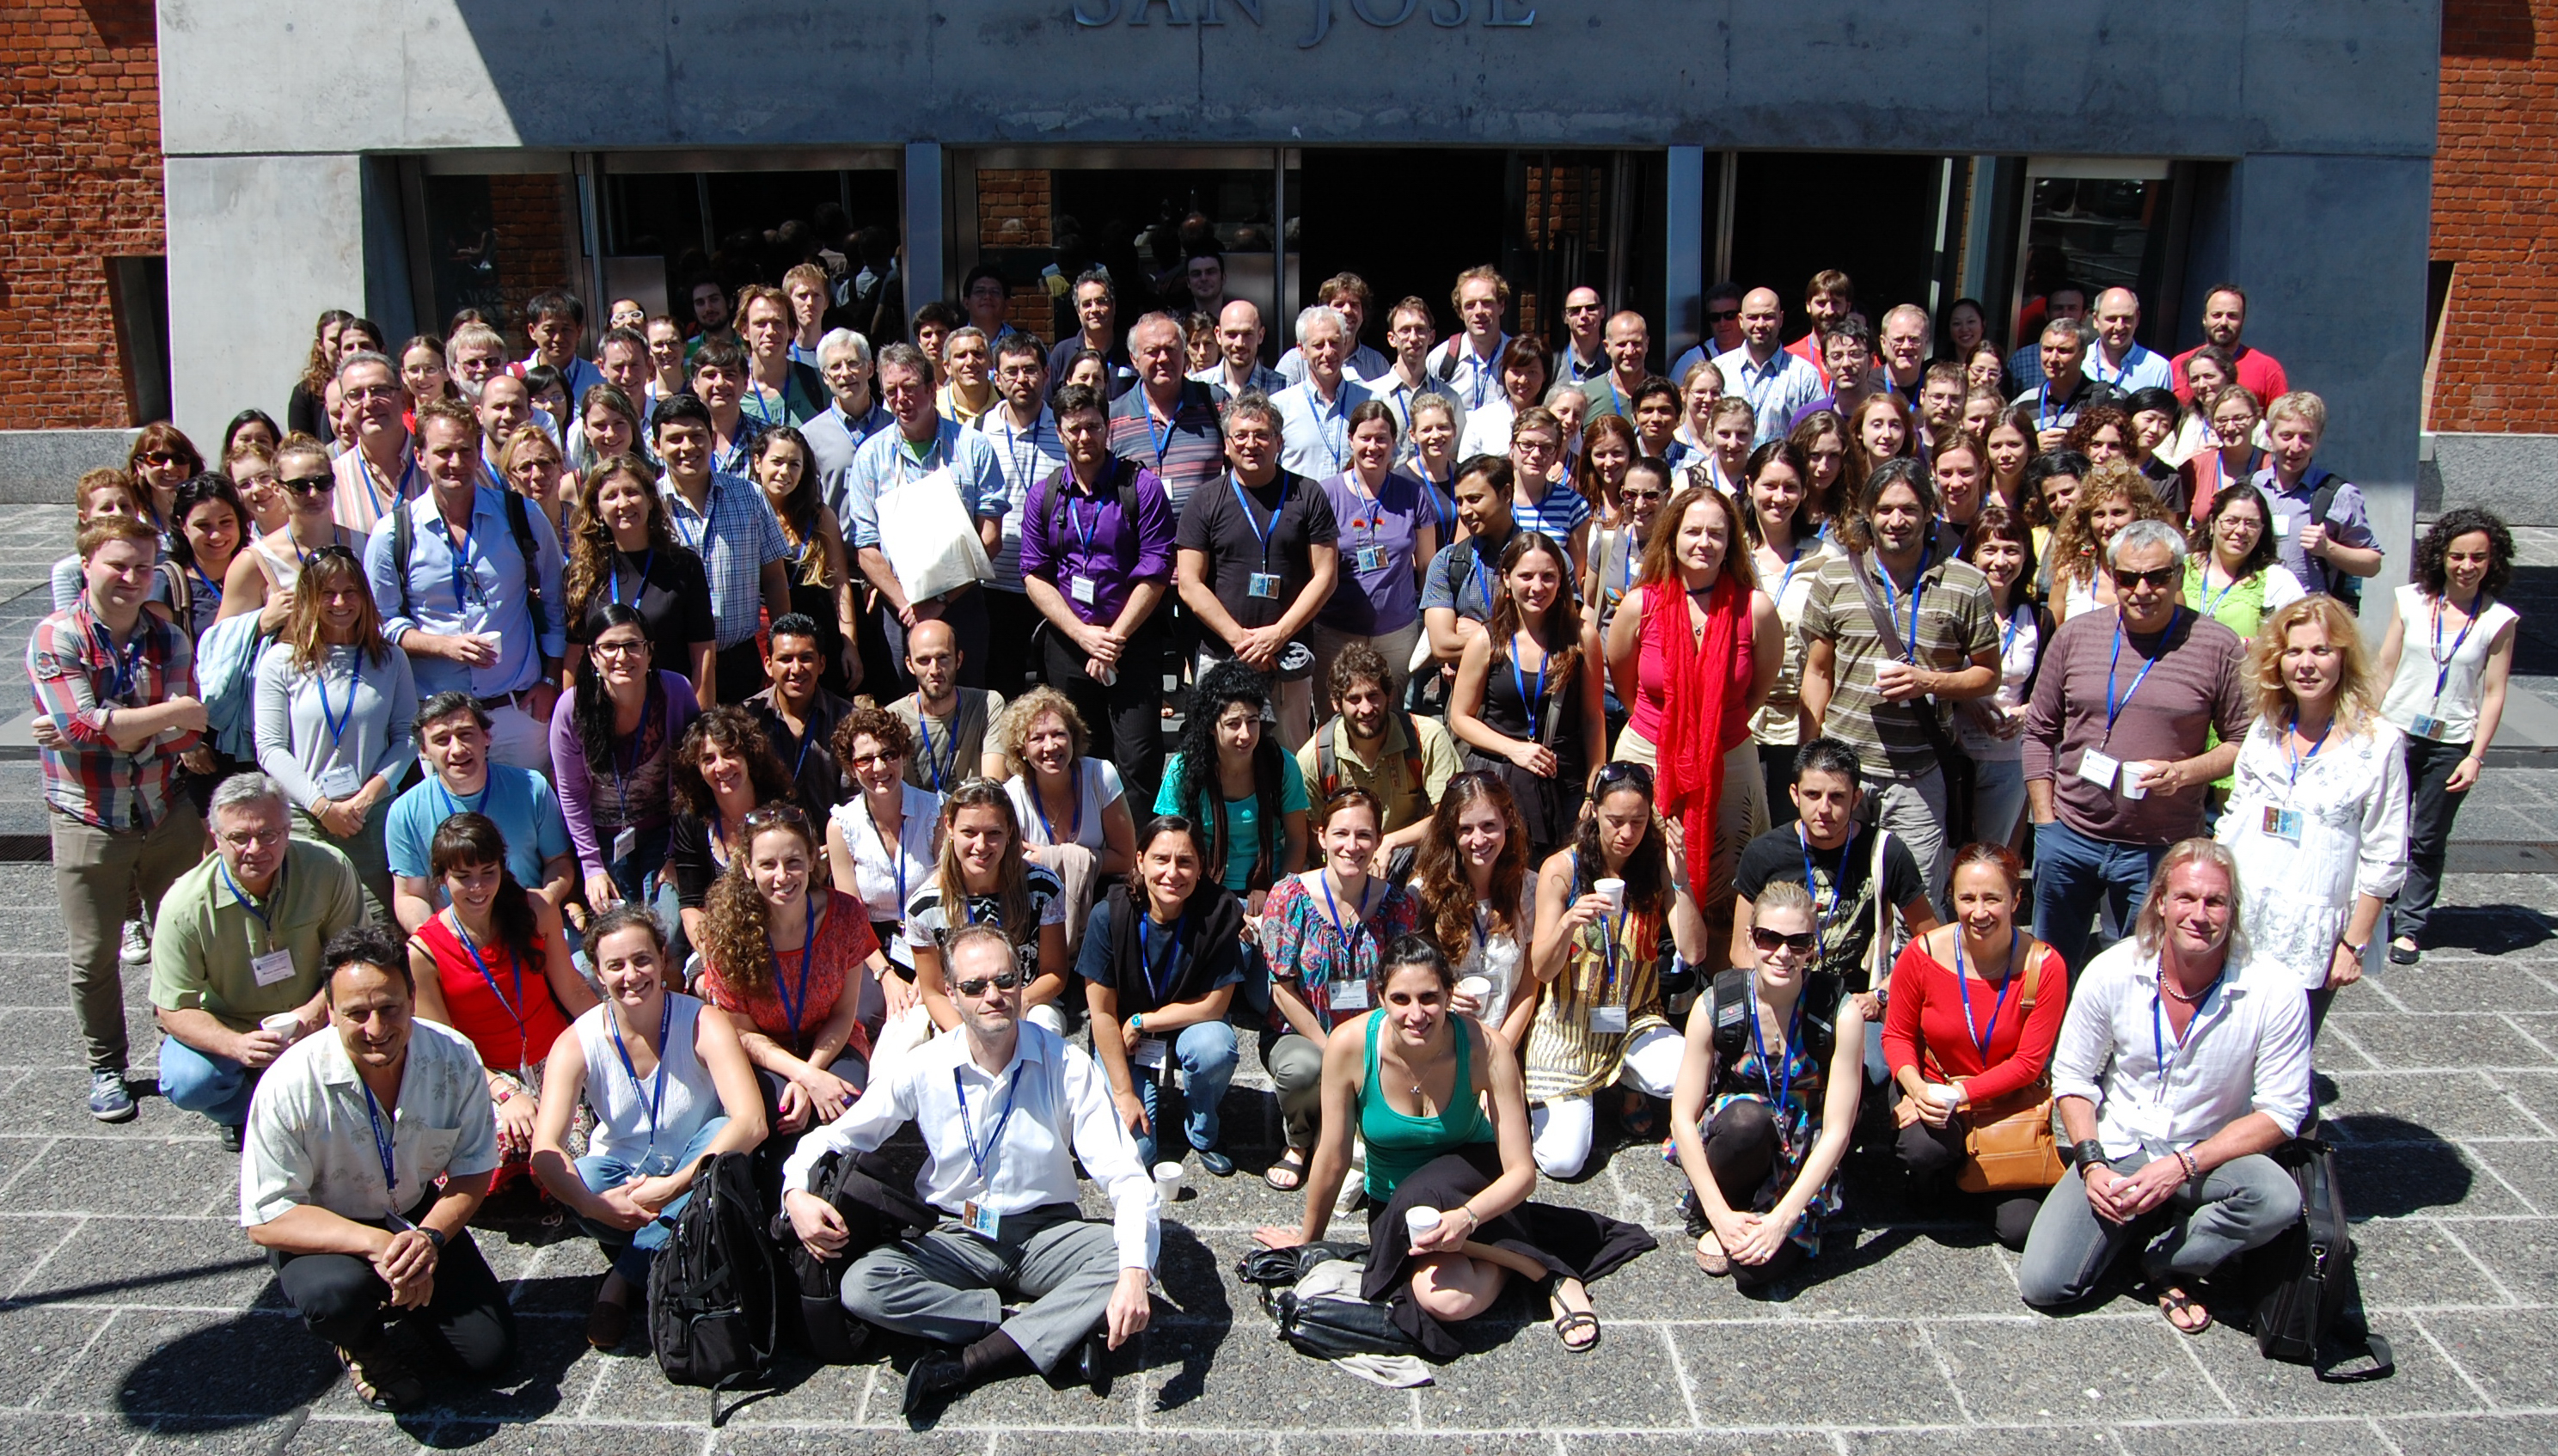 Group photo of delegates of the 32nd New Phytologist Symposium